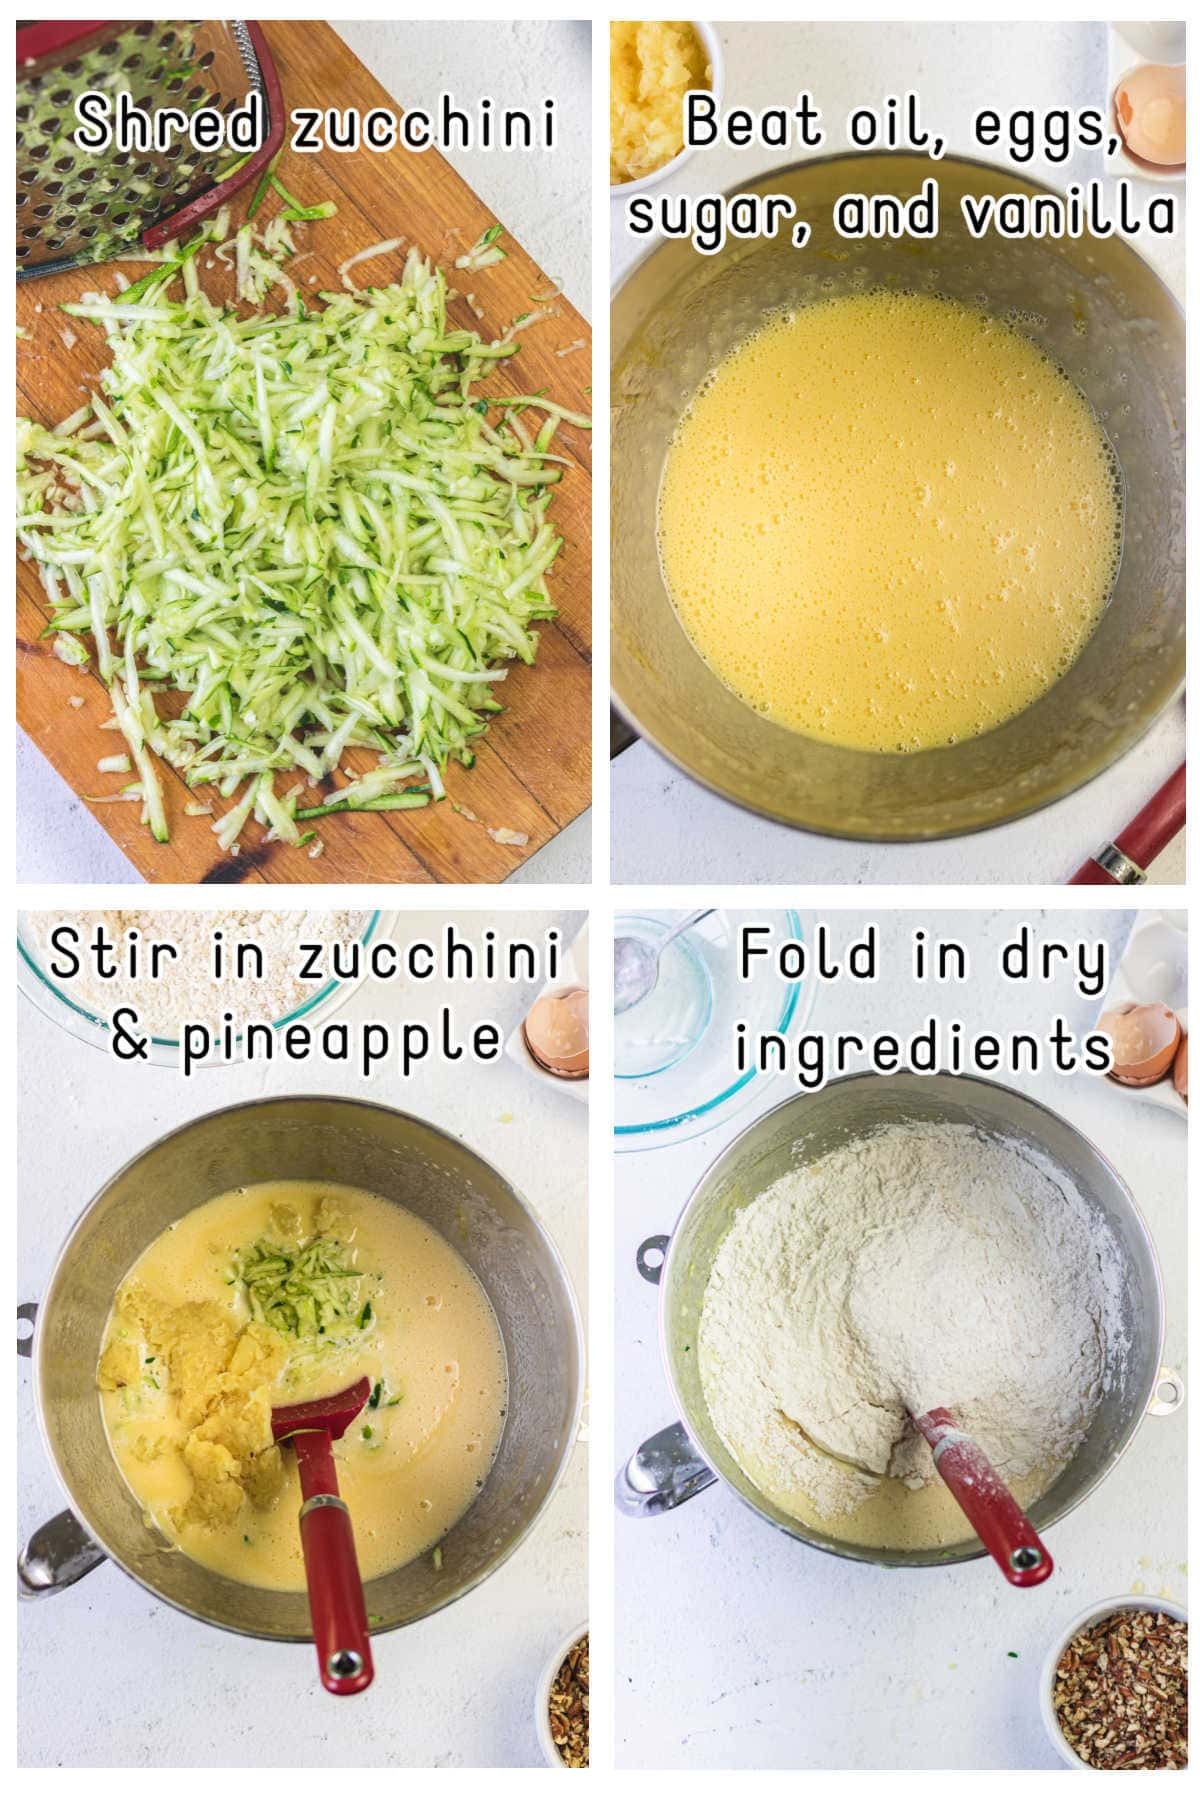 Steps 1 through 4 for making zucchini bread.